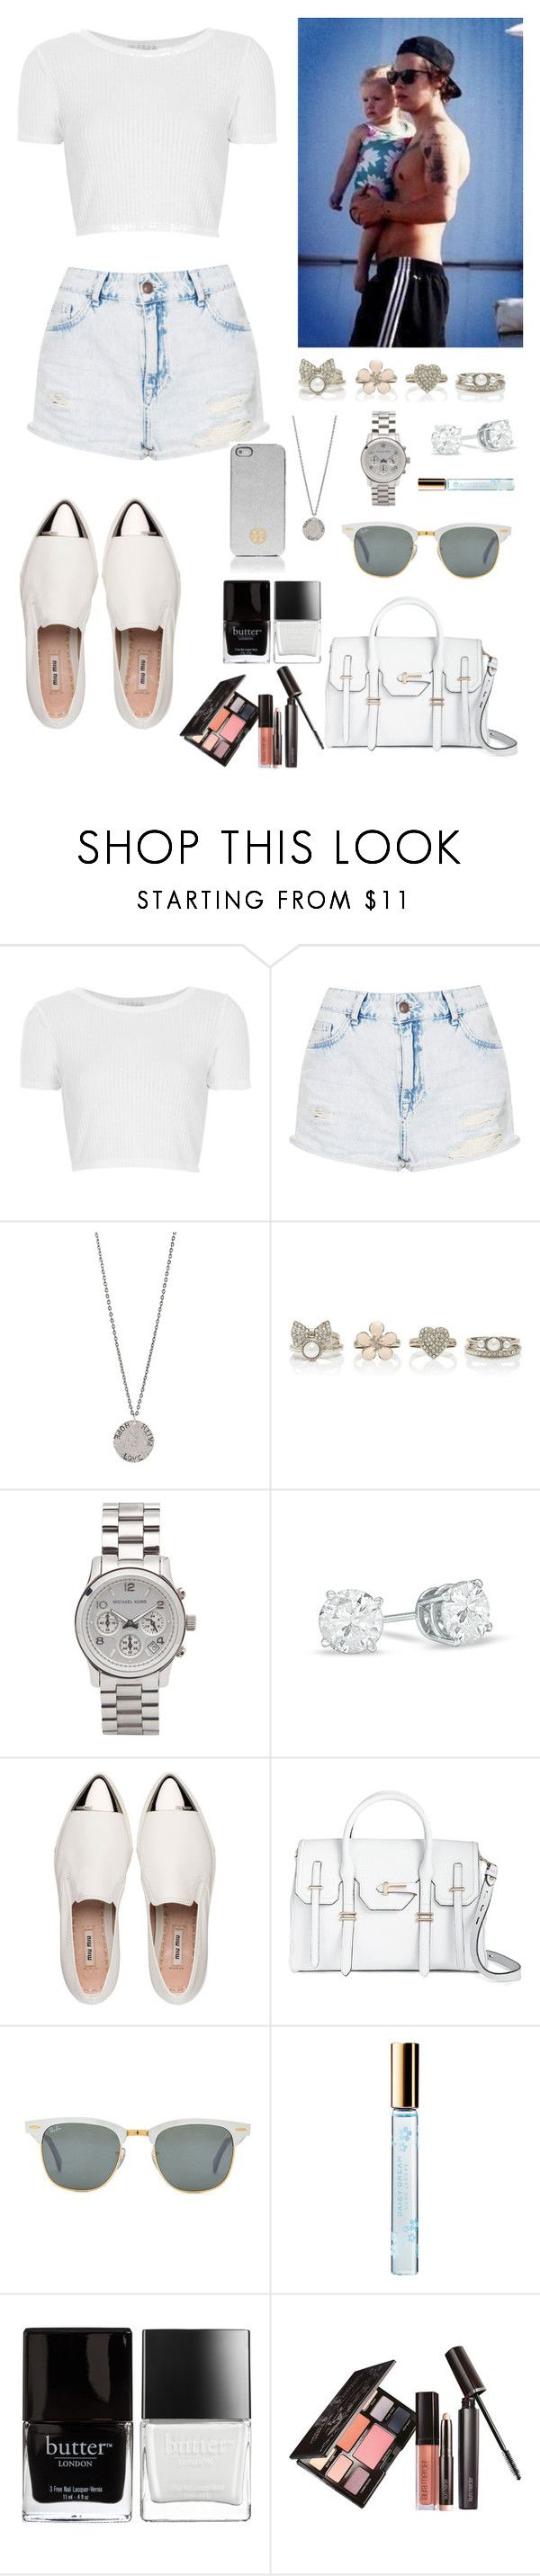 """Babysiting Lux w/ Harry Styles"" by officialonedirectionfanpage ❤ liked on Polyvore featuring Topshop, Diana Warner, Forever New, Michael Kors, Miu Miu, Rebecca Minkoff, Ray-Ban, Marc Jacobs, Butter London and Laura Mercier"